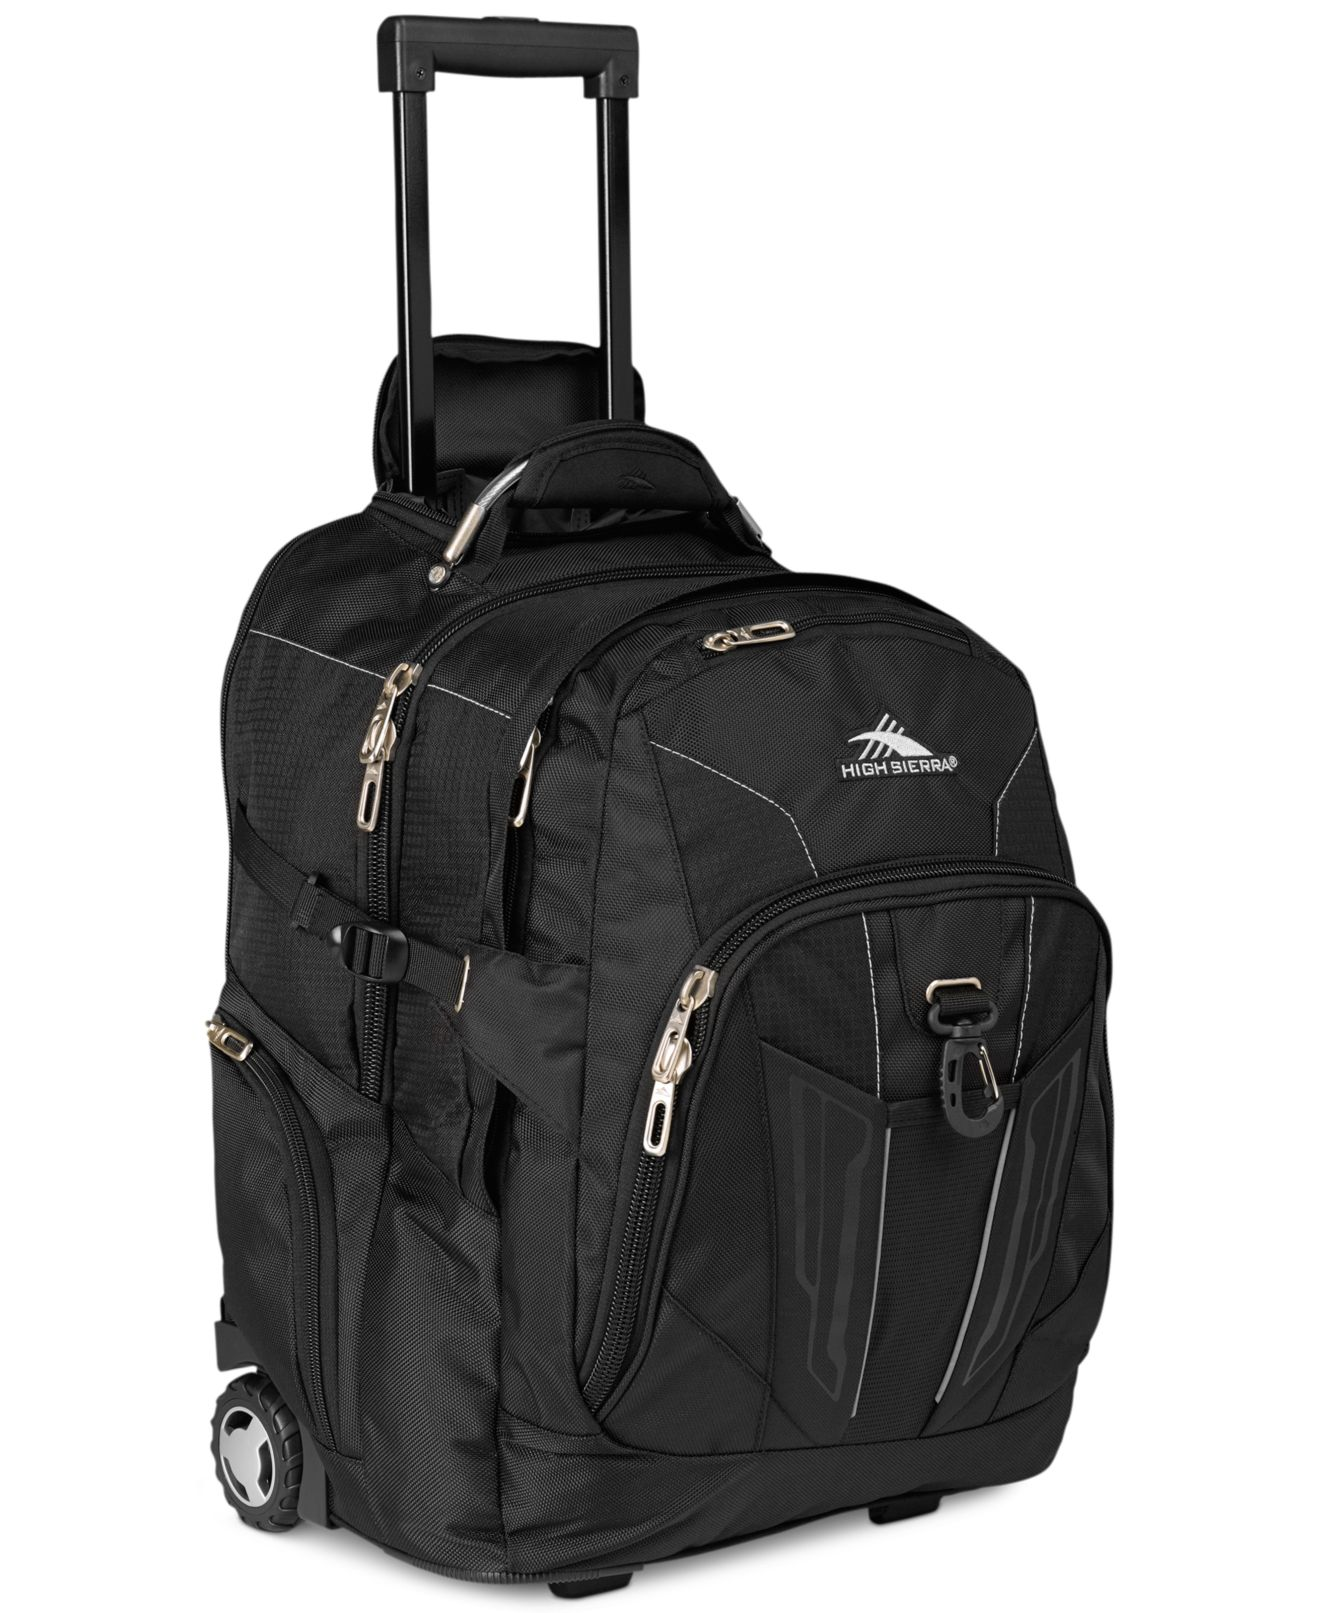 Travel Select Rolling Backpack - Crazy Backpacks